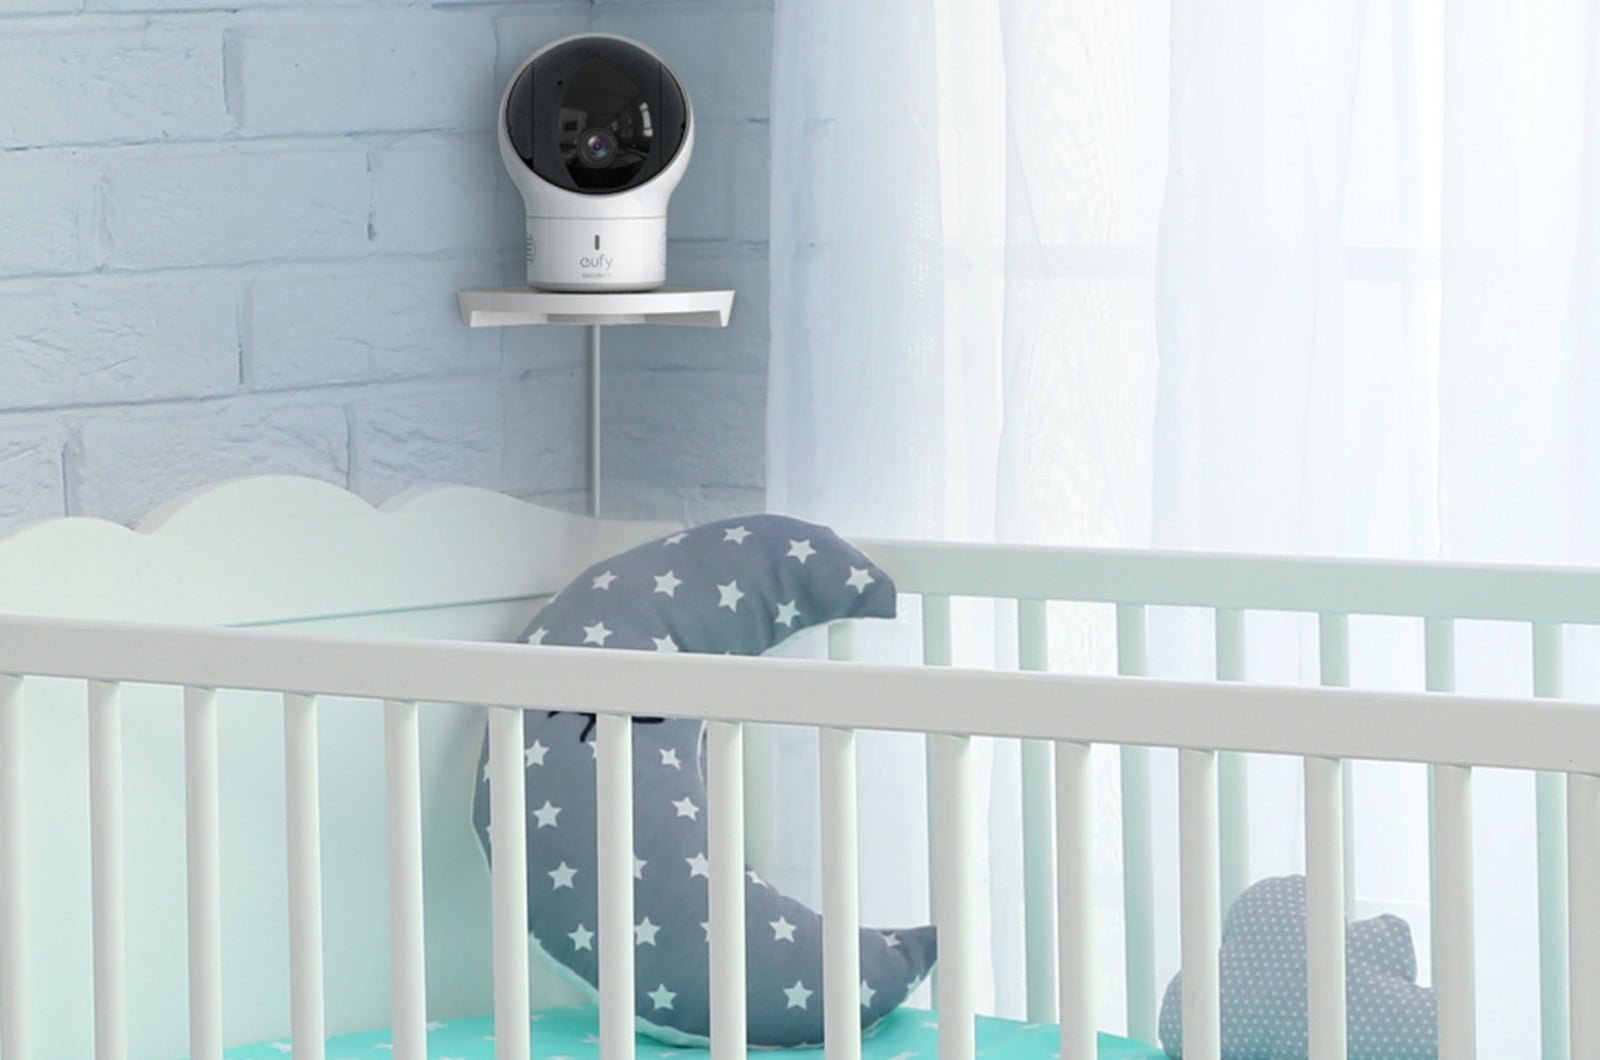 Eufy Spaceview Baby Monitor Review Simple Security For